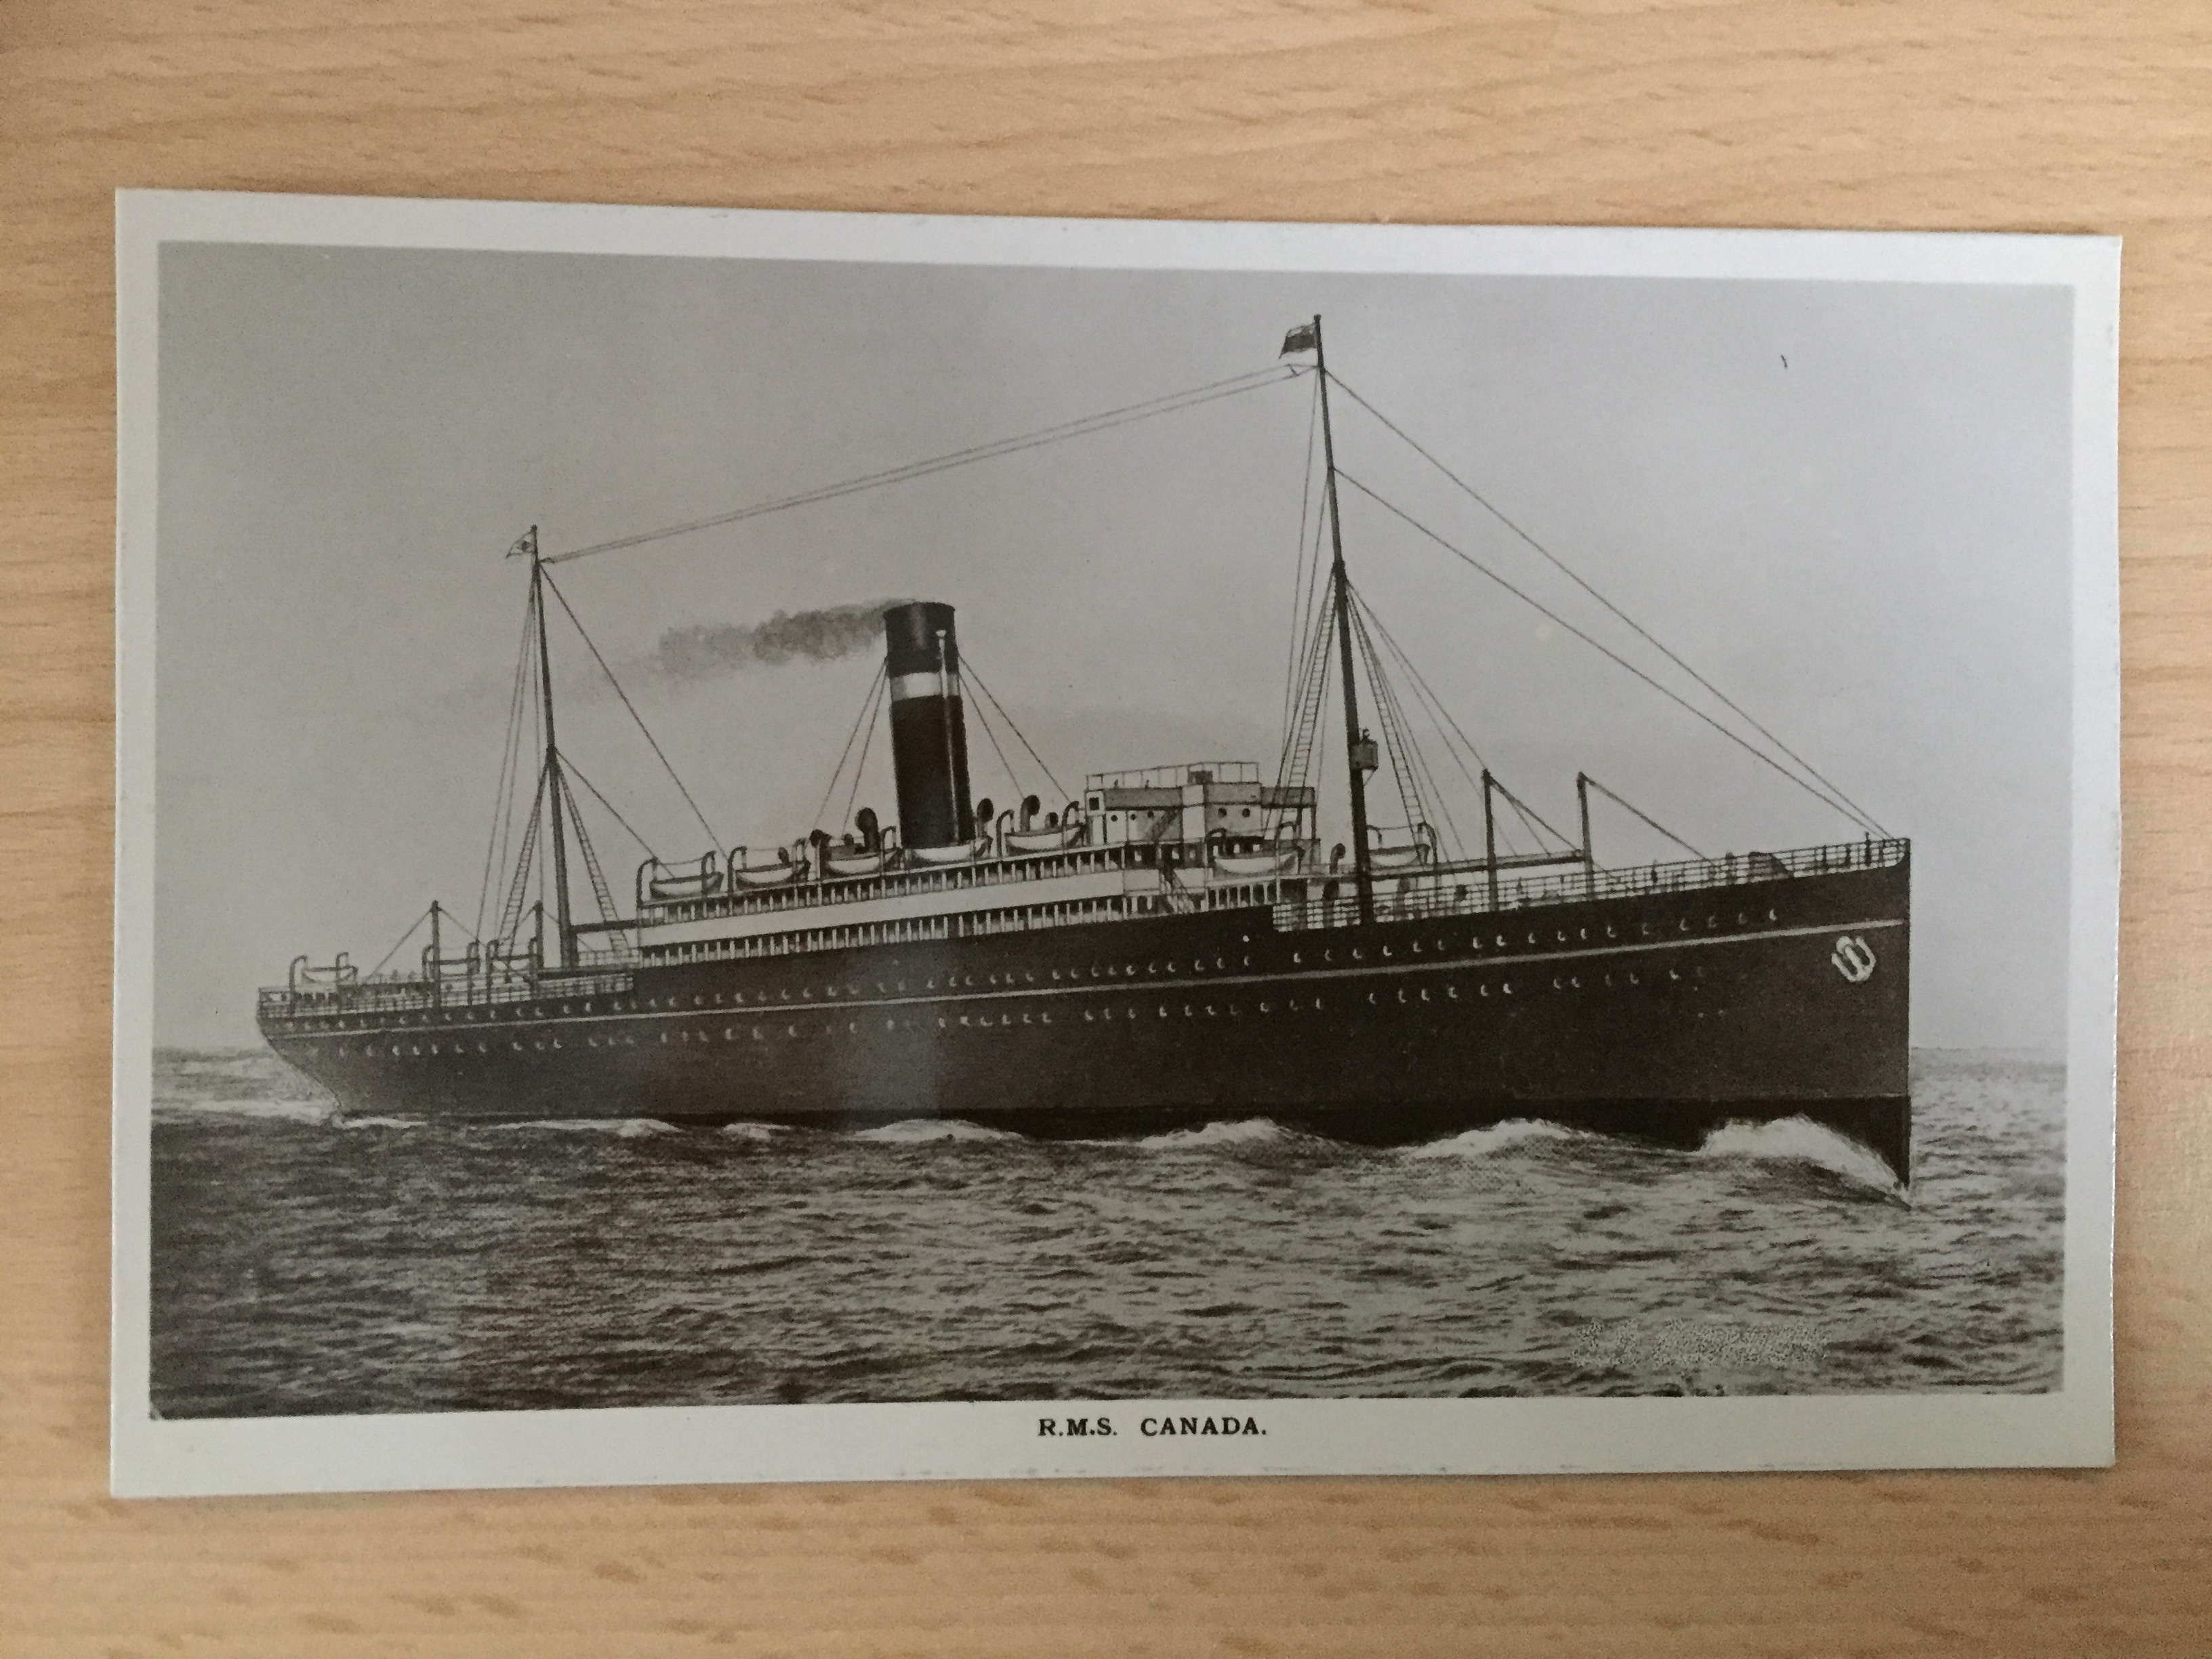 B/W POSTCARD FROM THE ANCHOR DONALDSON LINE VESSEL CANADA